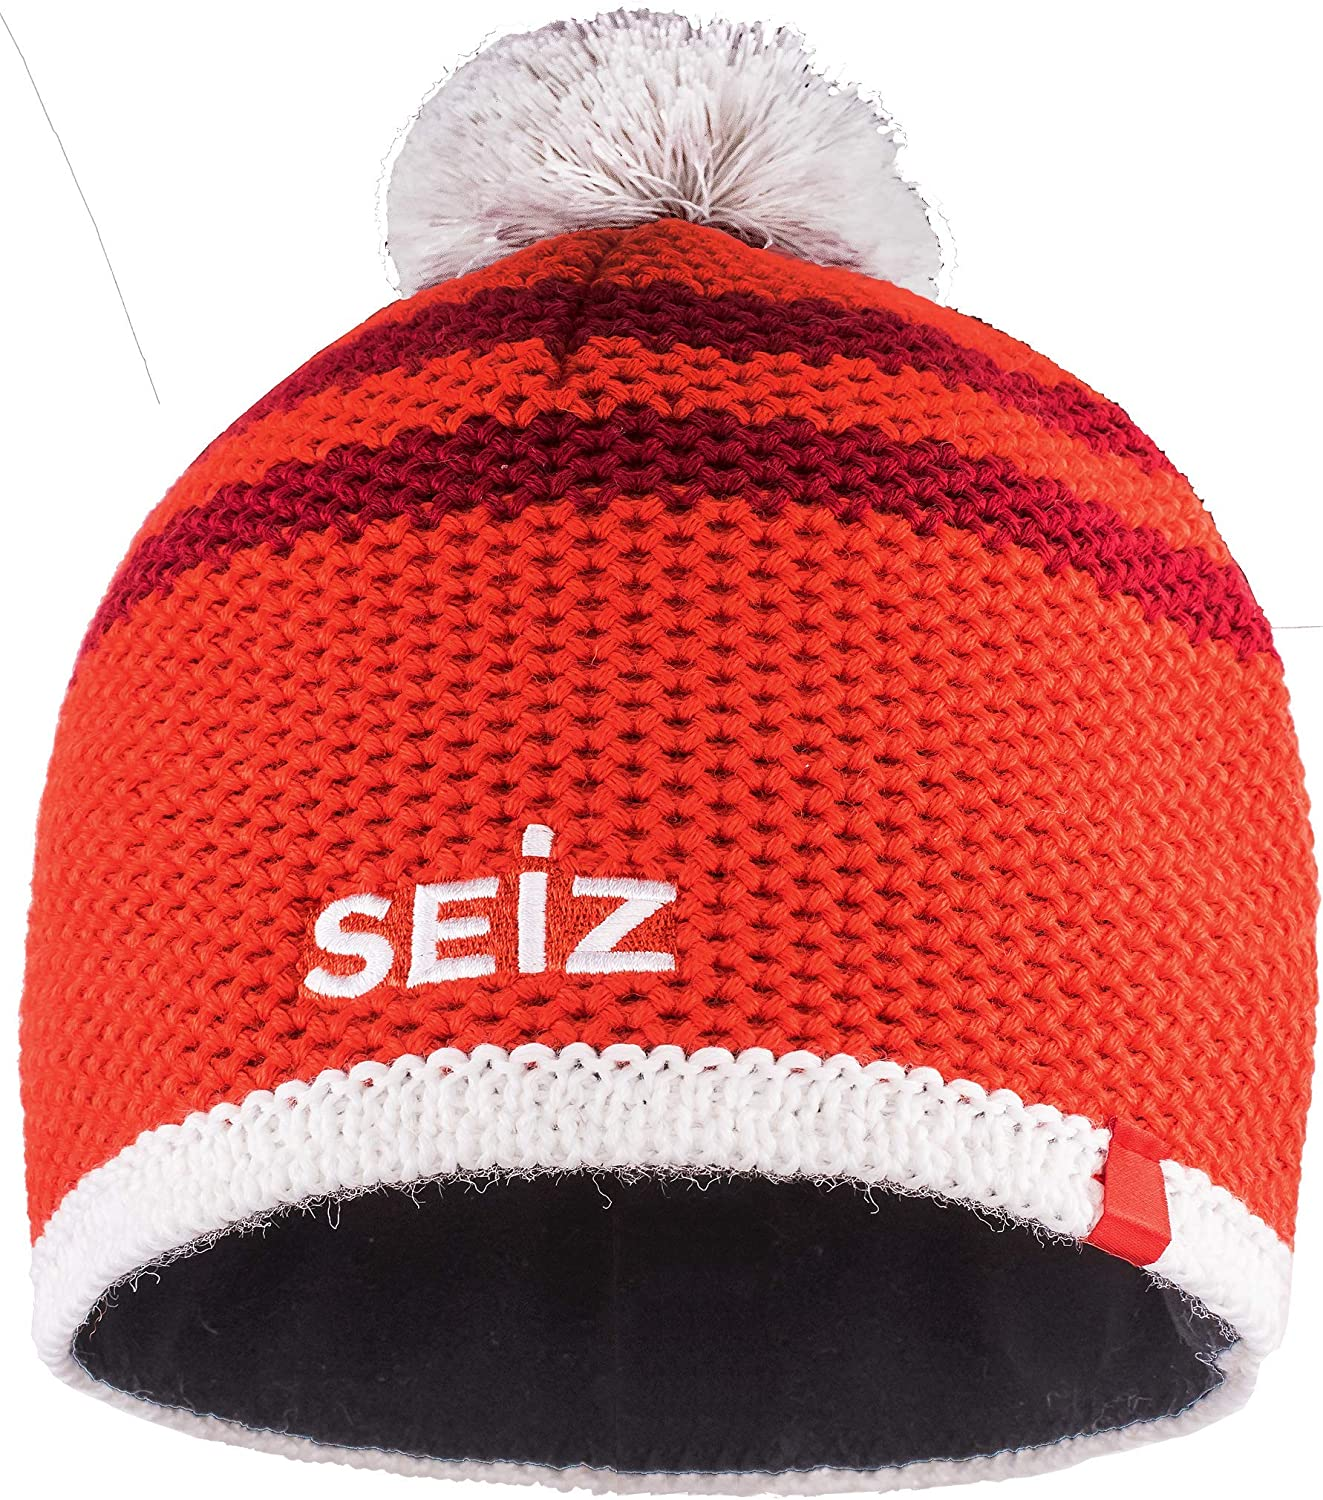 SEiZ Unisex – Adults' Knitted 90060003 Rt Max 79% OFF Discount mail order SRT Beanie